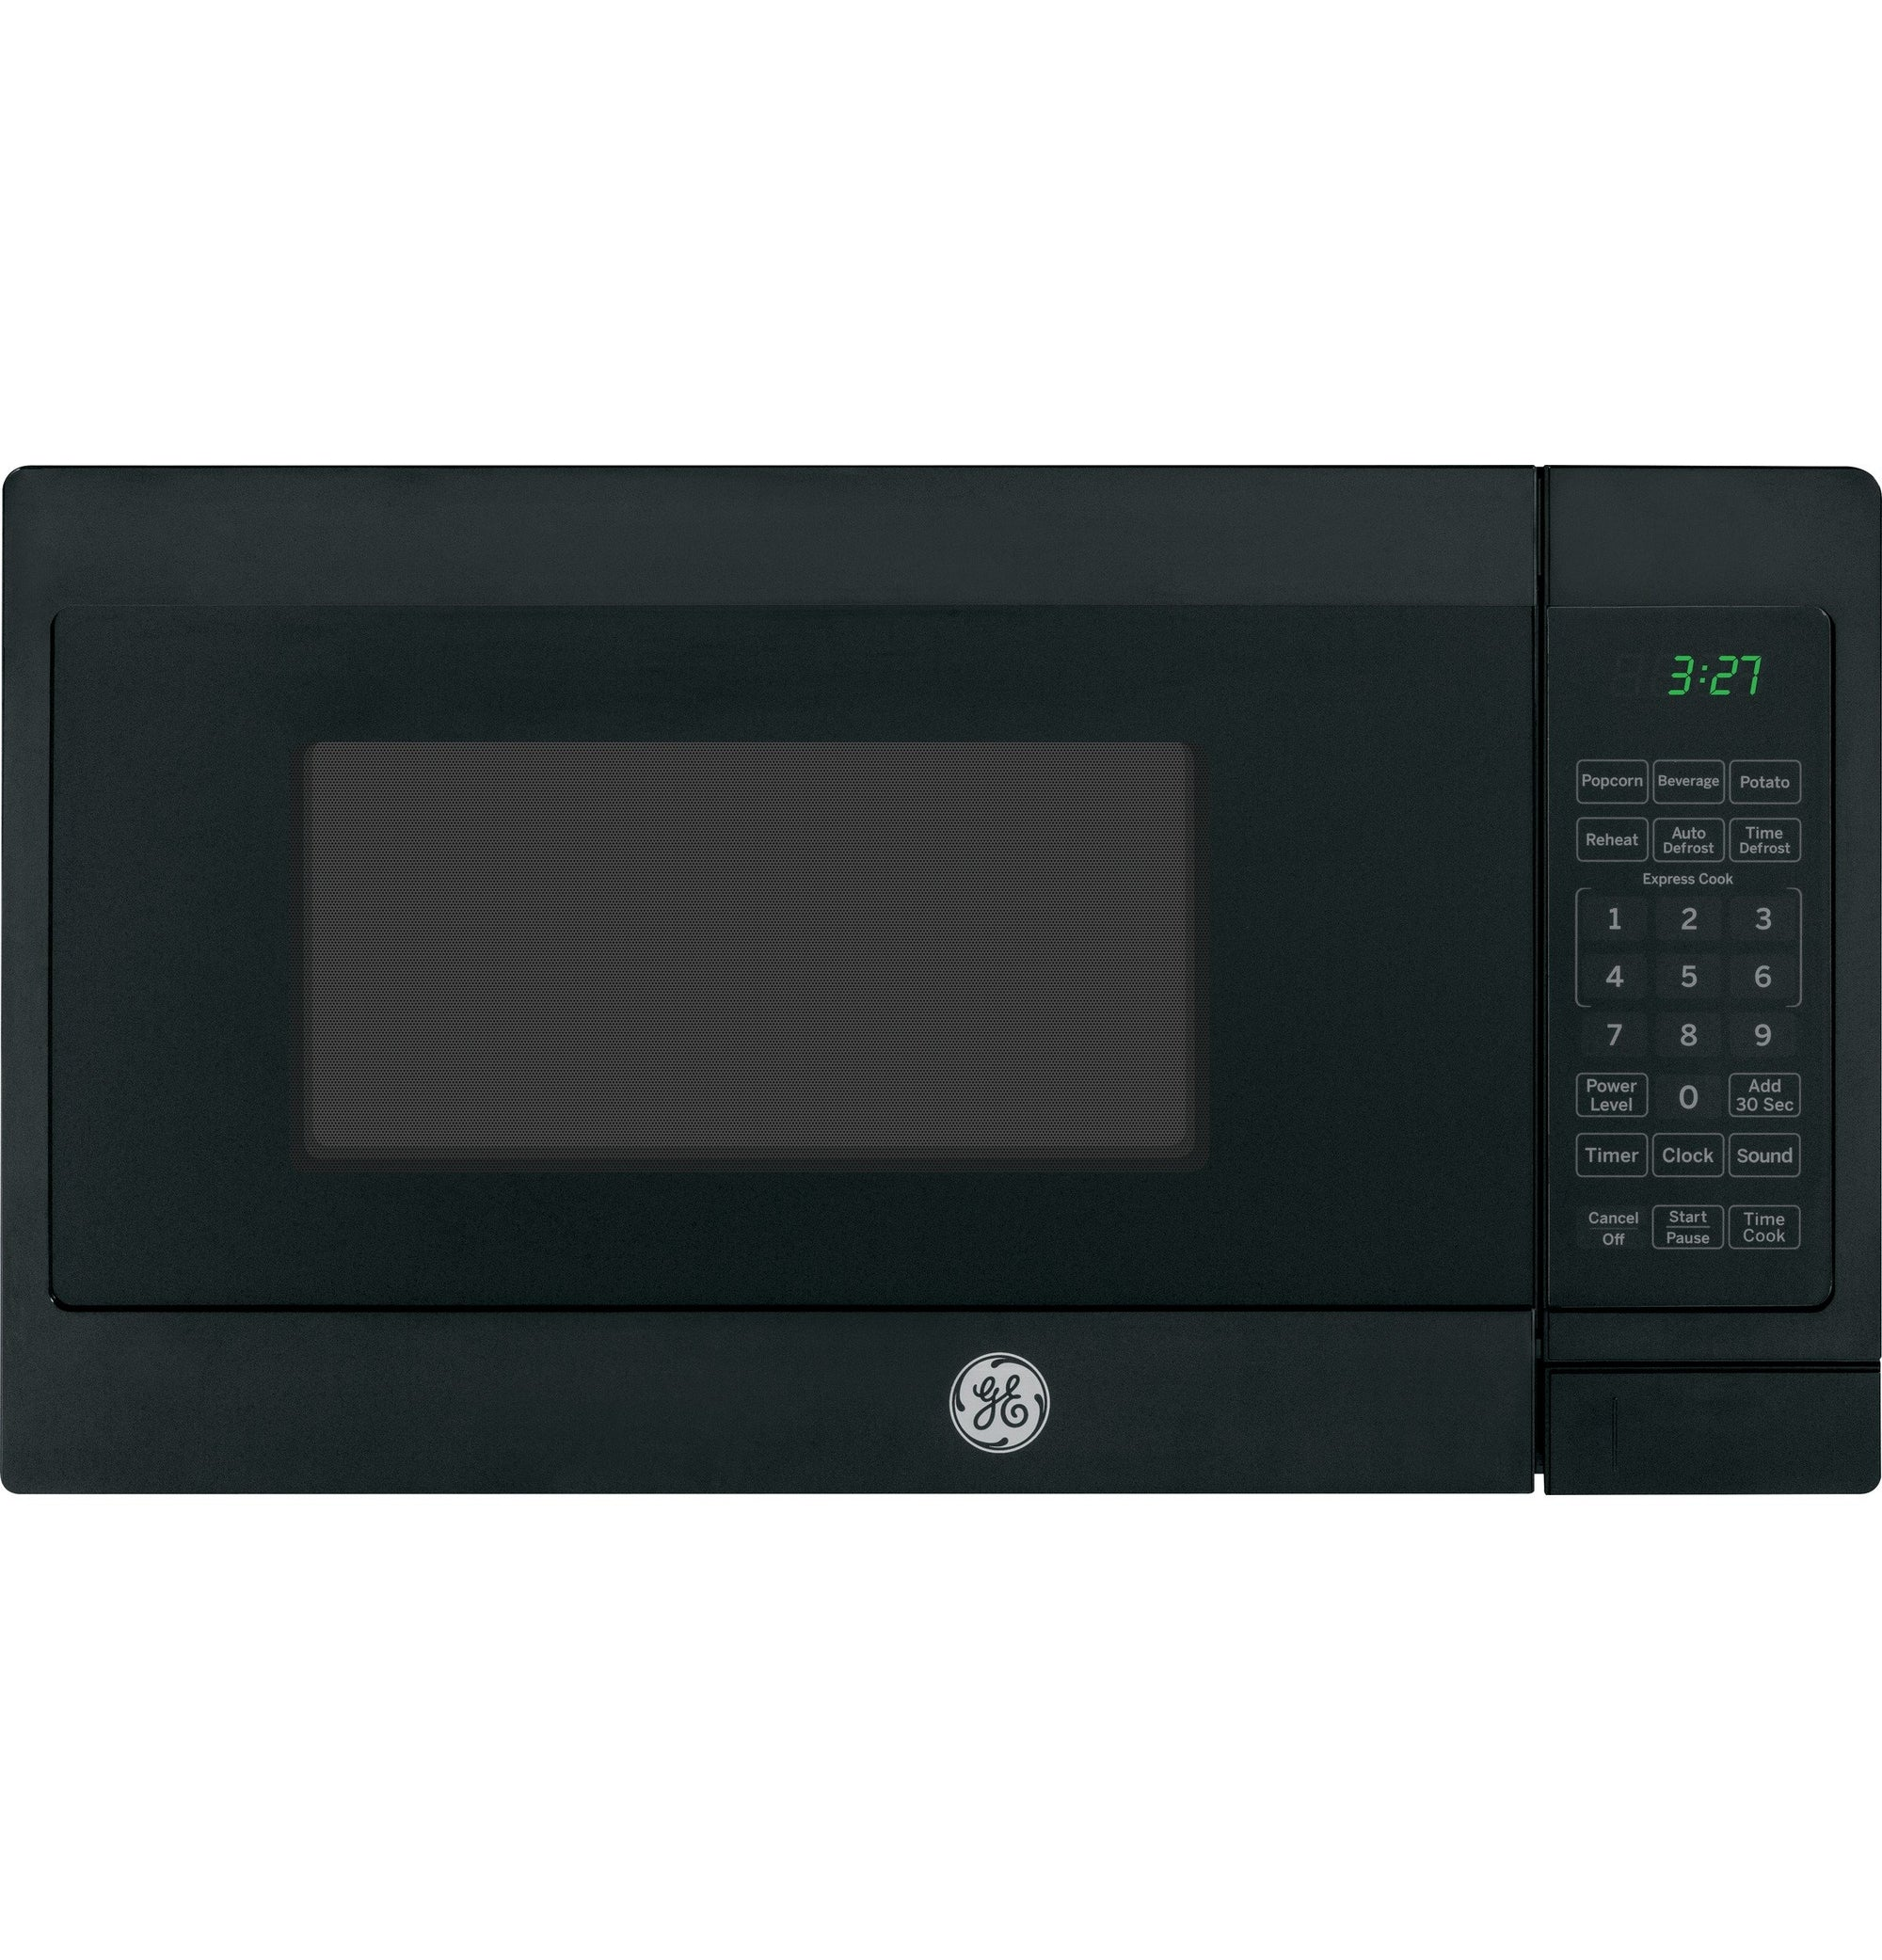 postalproducts JEM3072DHBB 0.7 Cu. Ft Oven-JEM3072DHBB GE 0.7 Cu. Ft. Capacity Countertop Microwave Oven, 0.7 Cu Ft, Black